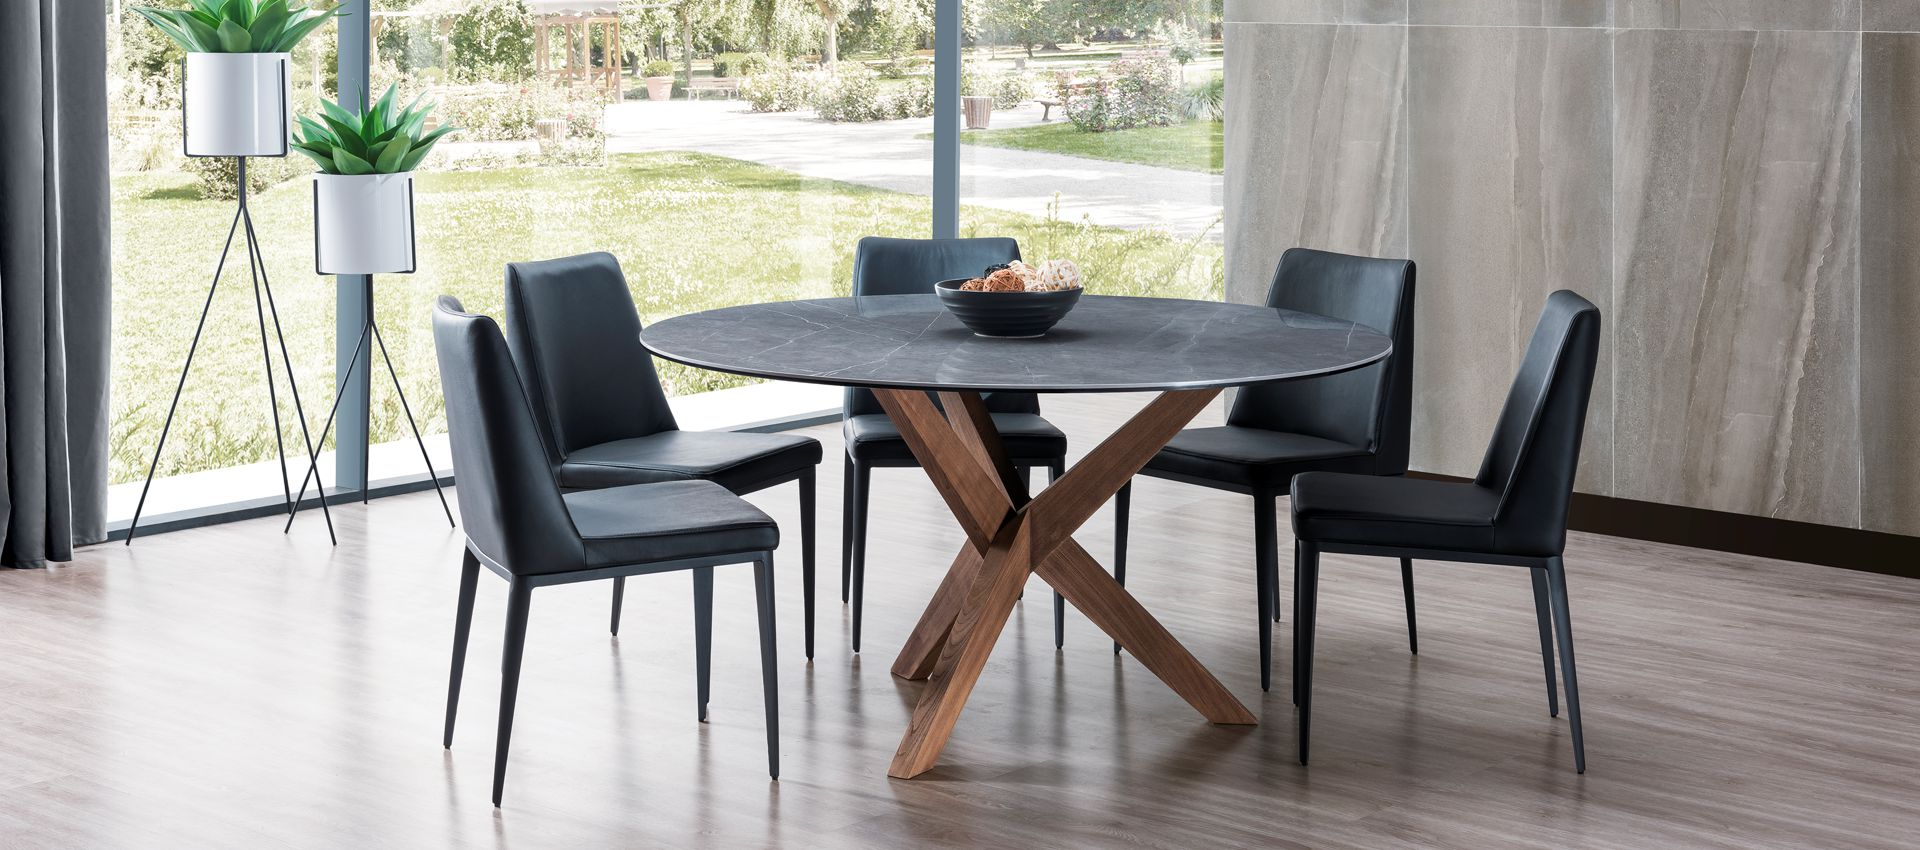 cf8ab886d0 Orion Timber and Stone Round Dining Table | Gainsville Furniture